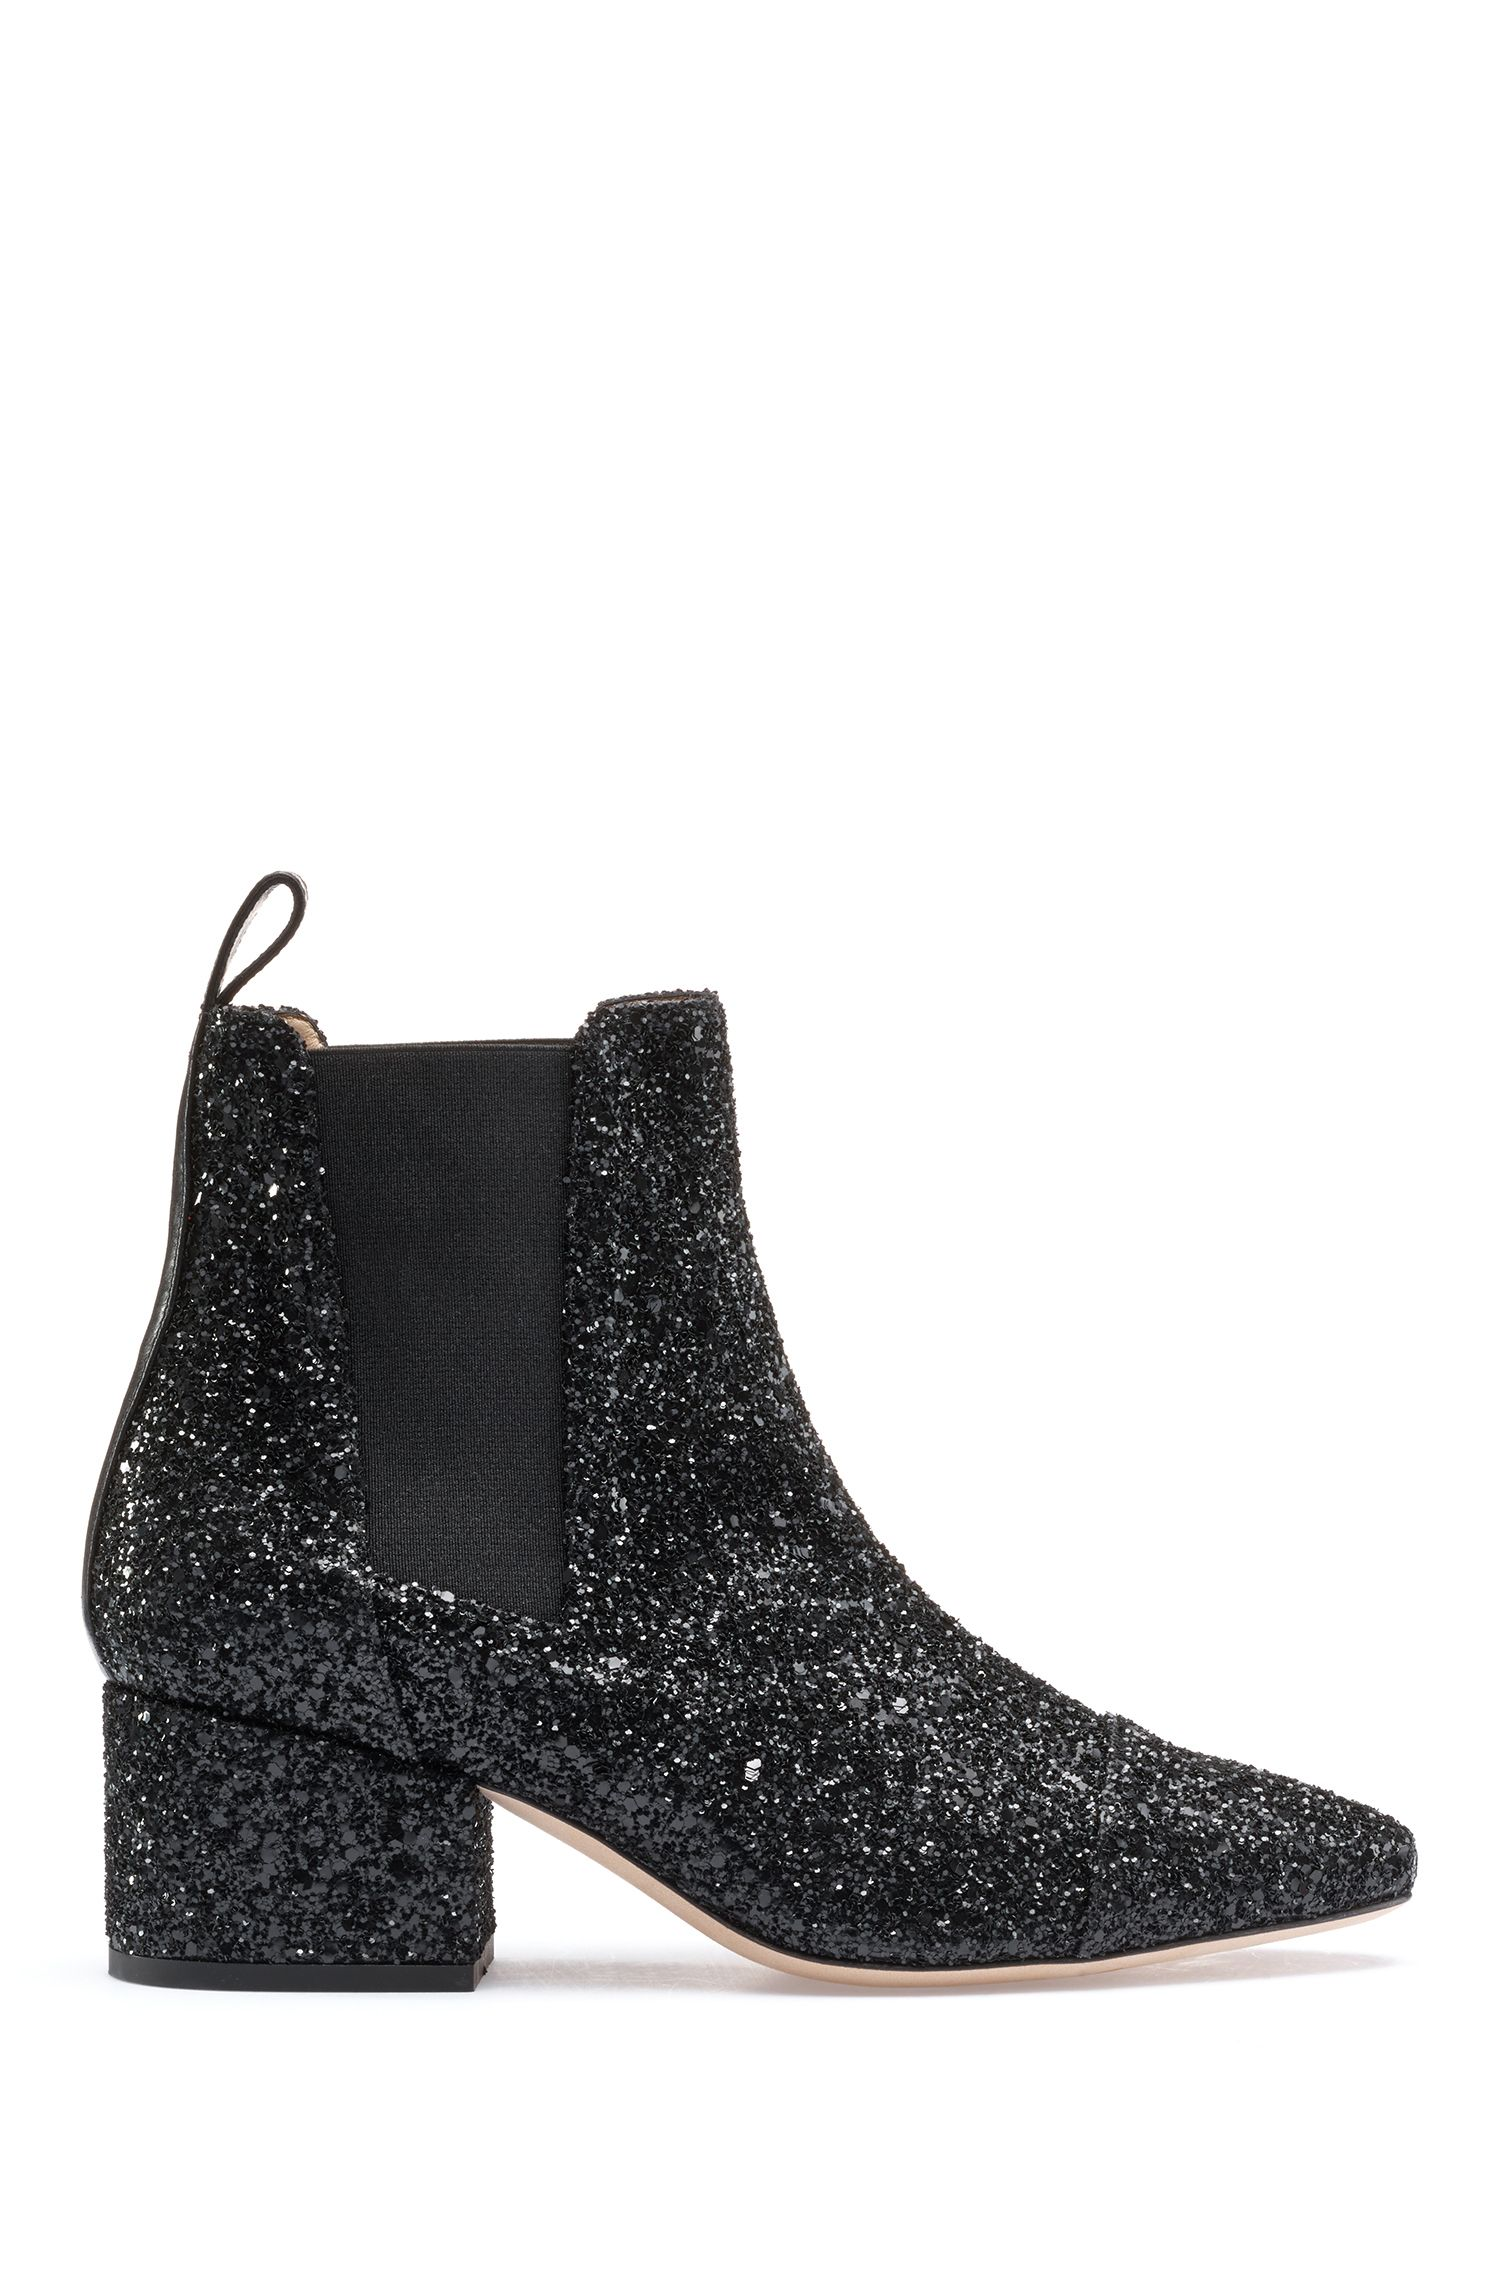 Chelsea boots with glitter uppers and leather trims, Black